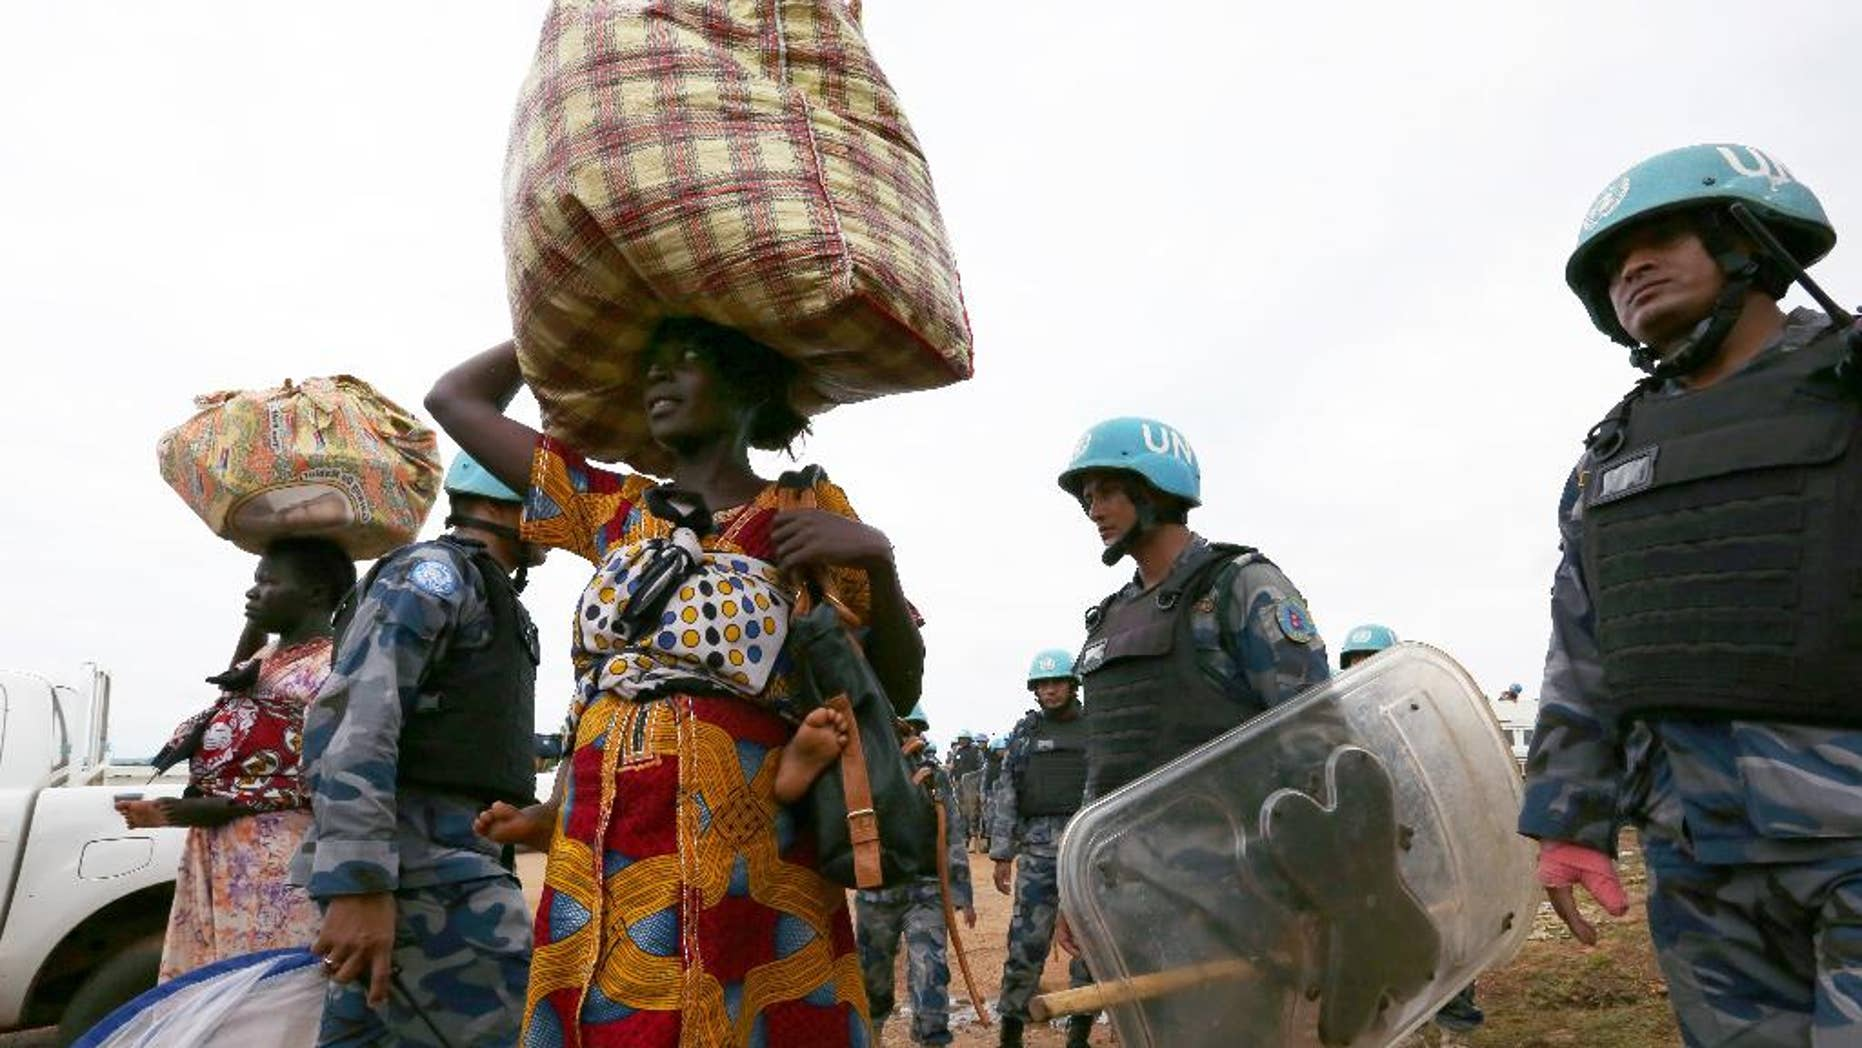 In this photo taken Wednesday, July 13, 2016 and released by the United Nations Mission in South Sudan (UNMISS), villagers and internal displaced people are helped by UN soldiers in the capital Juba, South Sudan. The death toll from a recent outbreak of fighting in South Sudan is almost certain to climb above the 272 people, including 33 civilians, reported by the government, United Nations officials said Wednesday (Eric Kanalstein/UNMISS via AP)